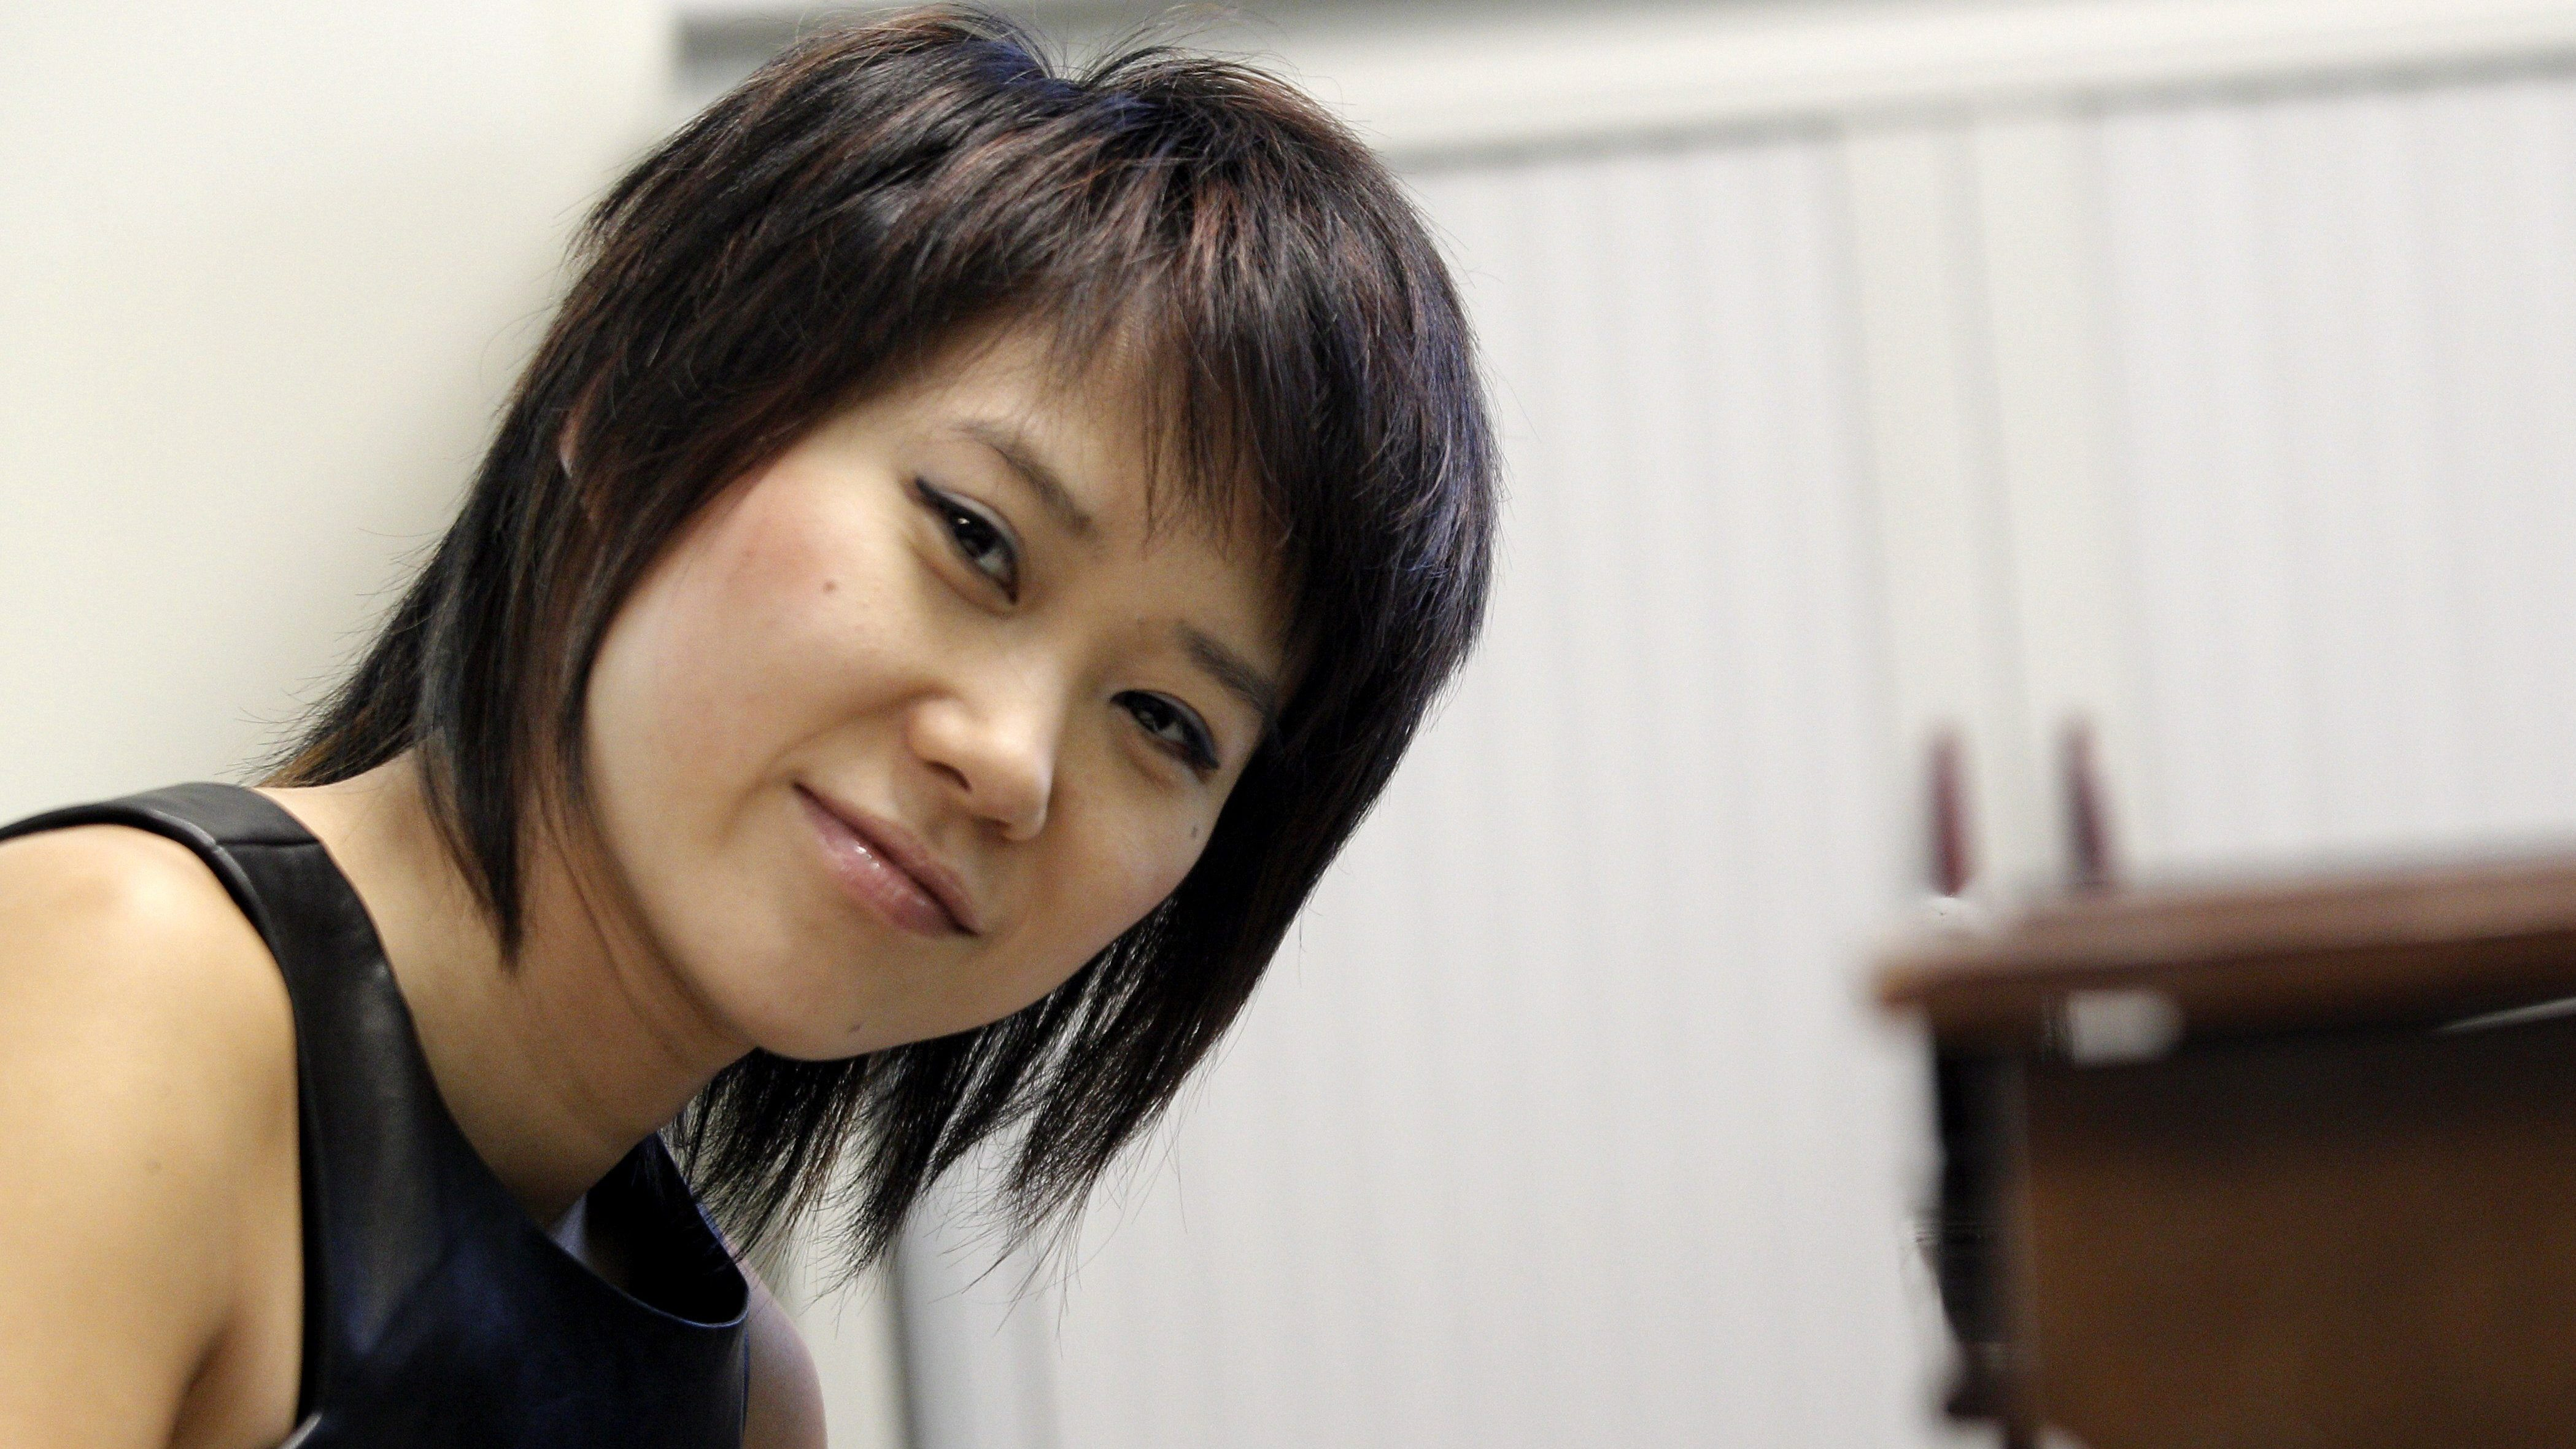 Chinese-born pianist Yuja Wang poses for photographers during her interview to Spanish news Agency EFE in Madrid, Spain, 10 May 2014. Yuja Wang will close the piano season of La Maestranza Theatre in Sevilla with a concert on 13 May 2014. EPA/ZIPI